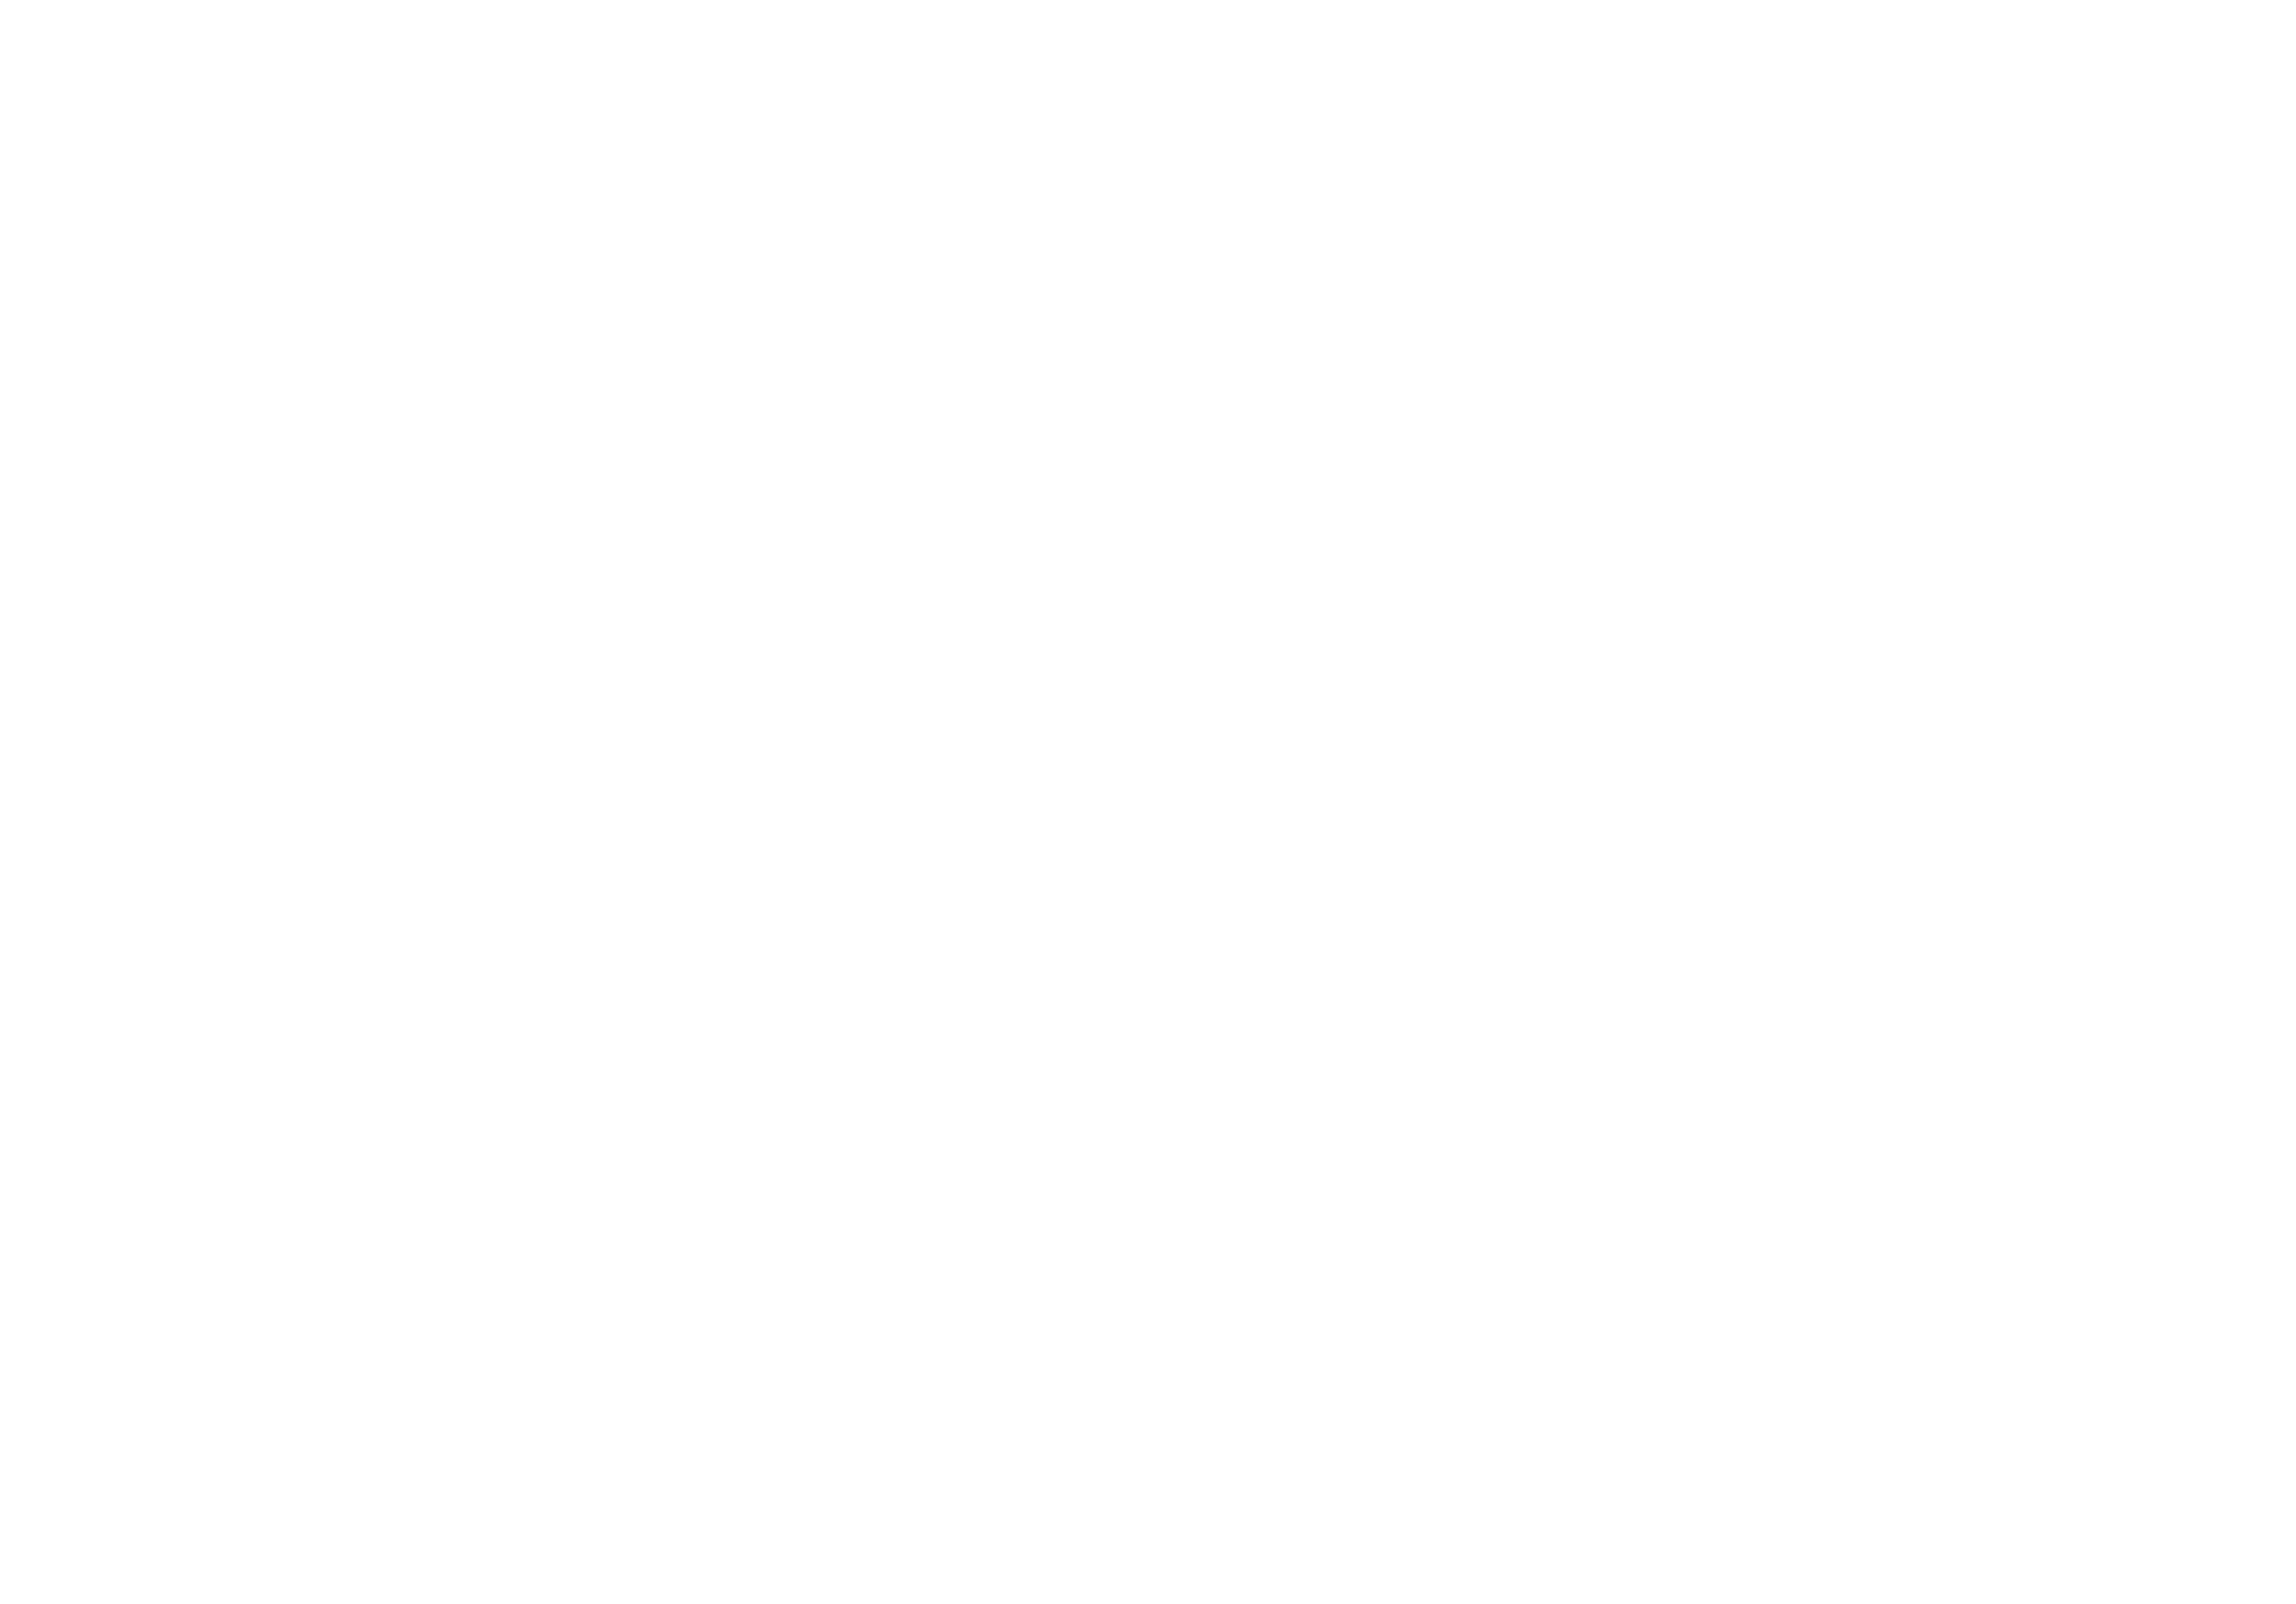 Power_philosophy (1).png